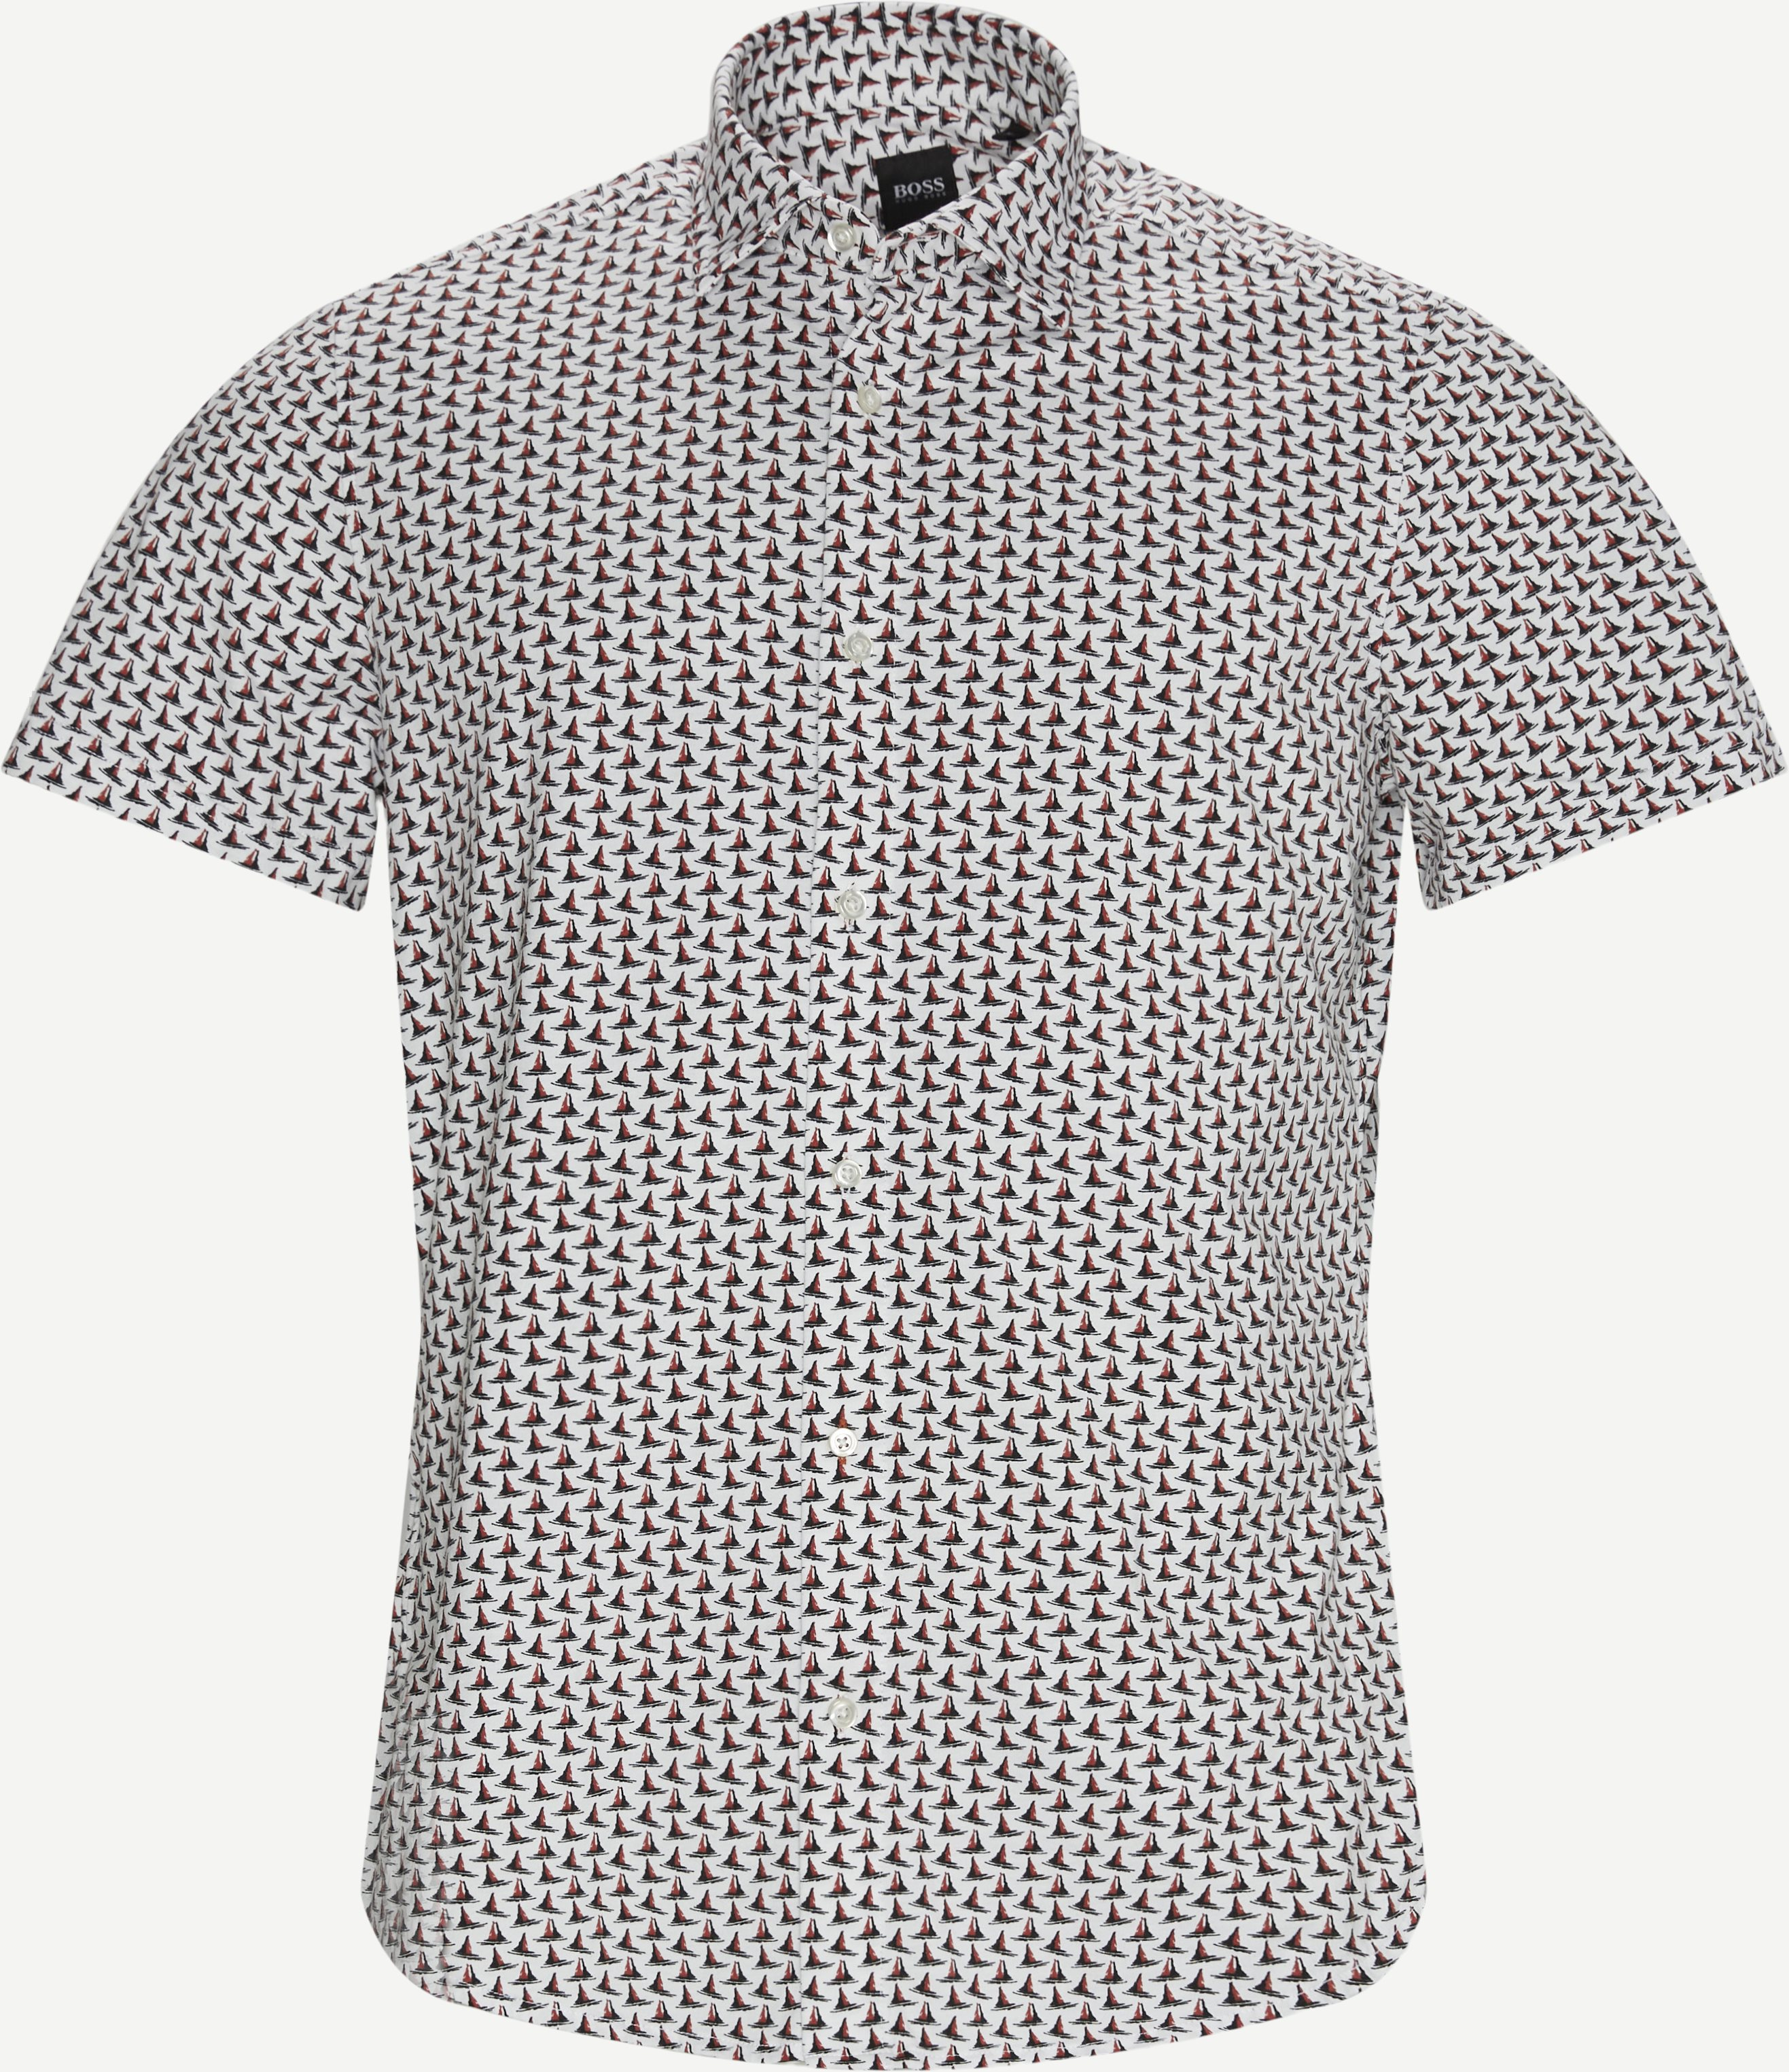 Rash Shirt  - Short-sleeved shirts - Regular - White